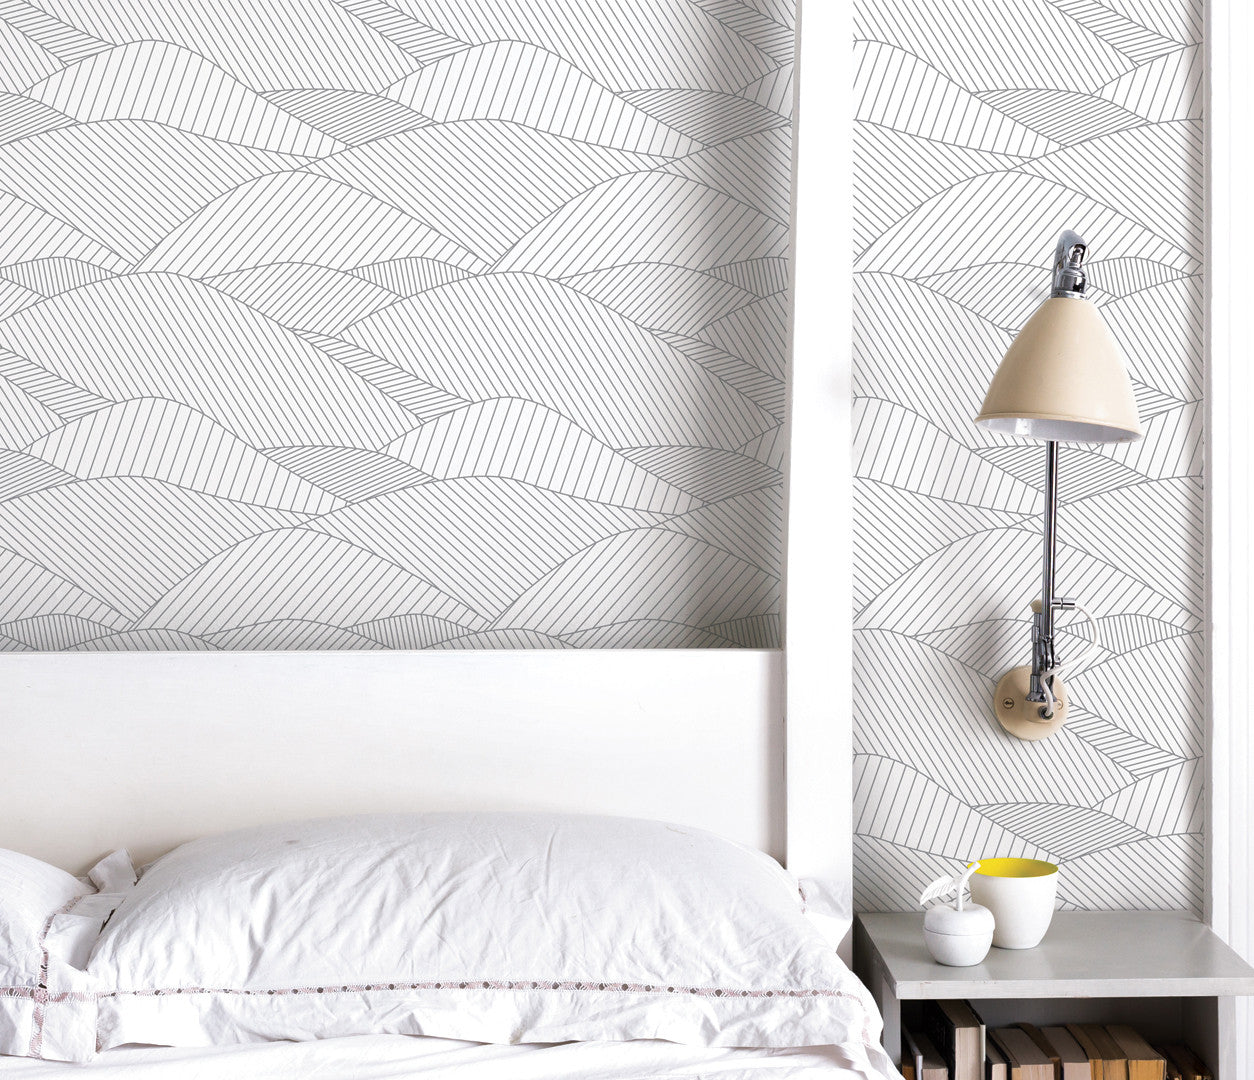 'South Downs' Rolling Hills Wallpaper in Heron Grey